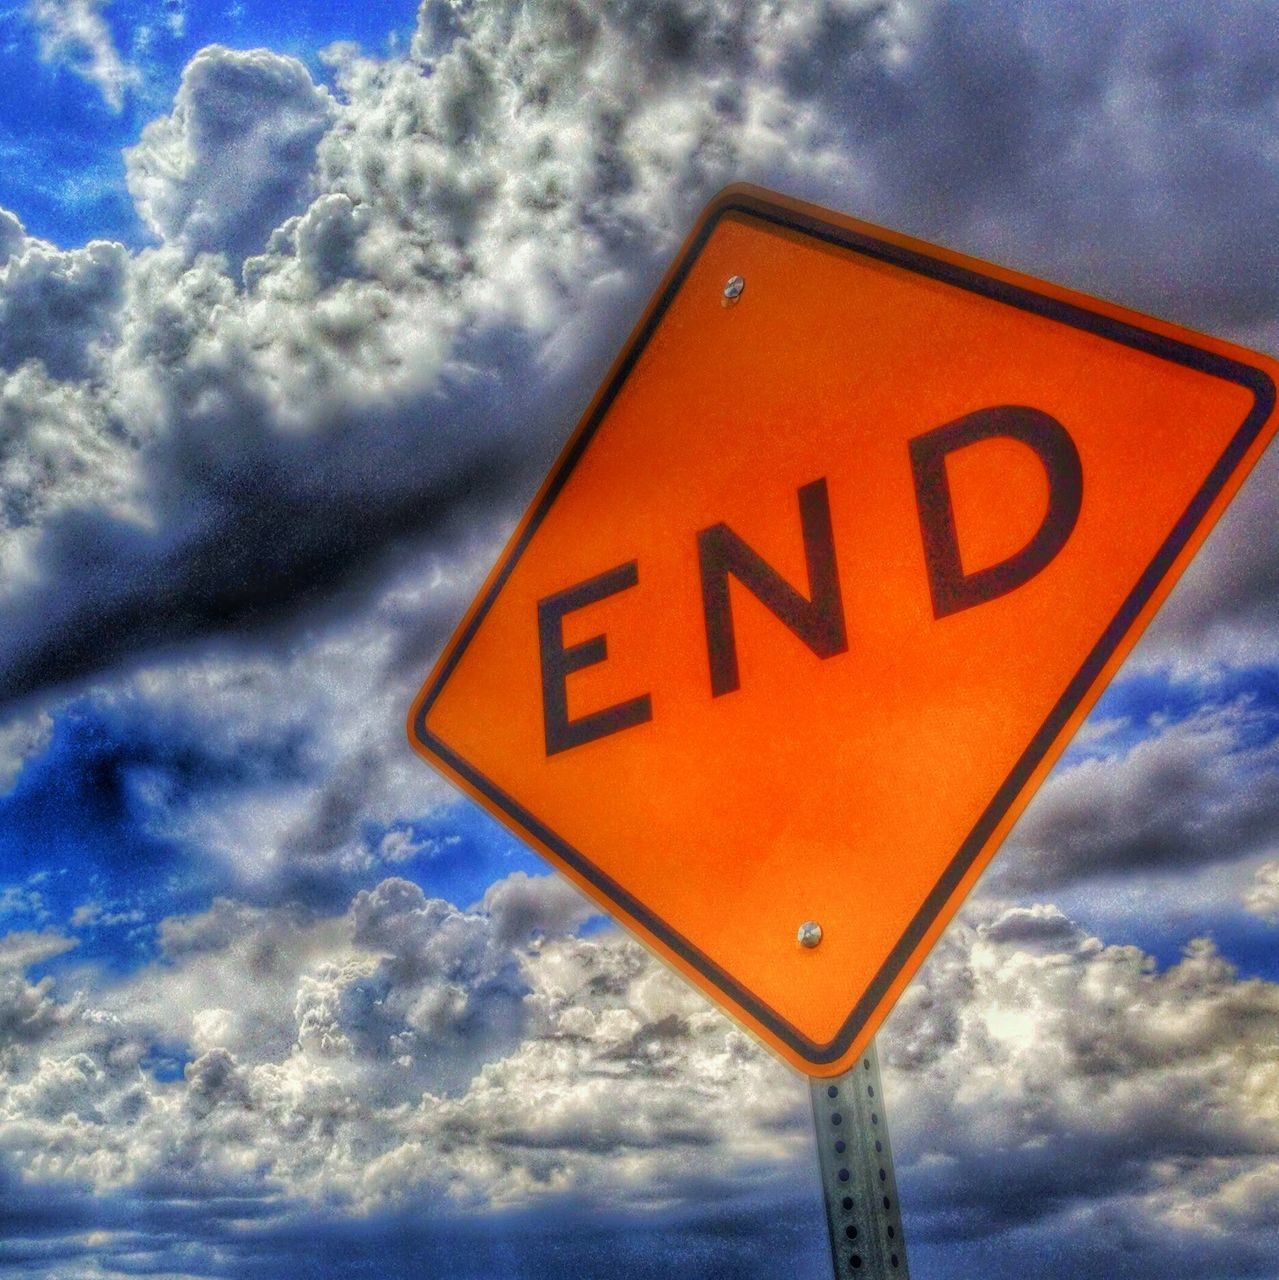 cloud - sky, sky, low angle view, communication, outdoors, no people, day, road sign, close-up